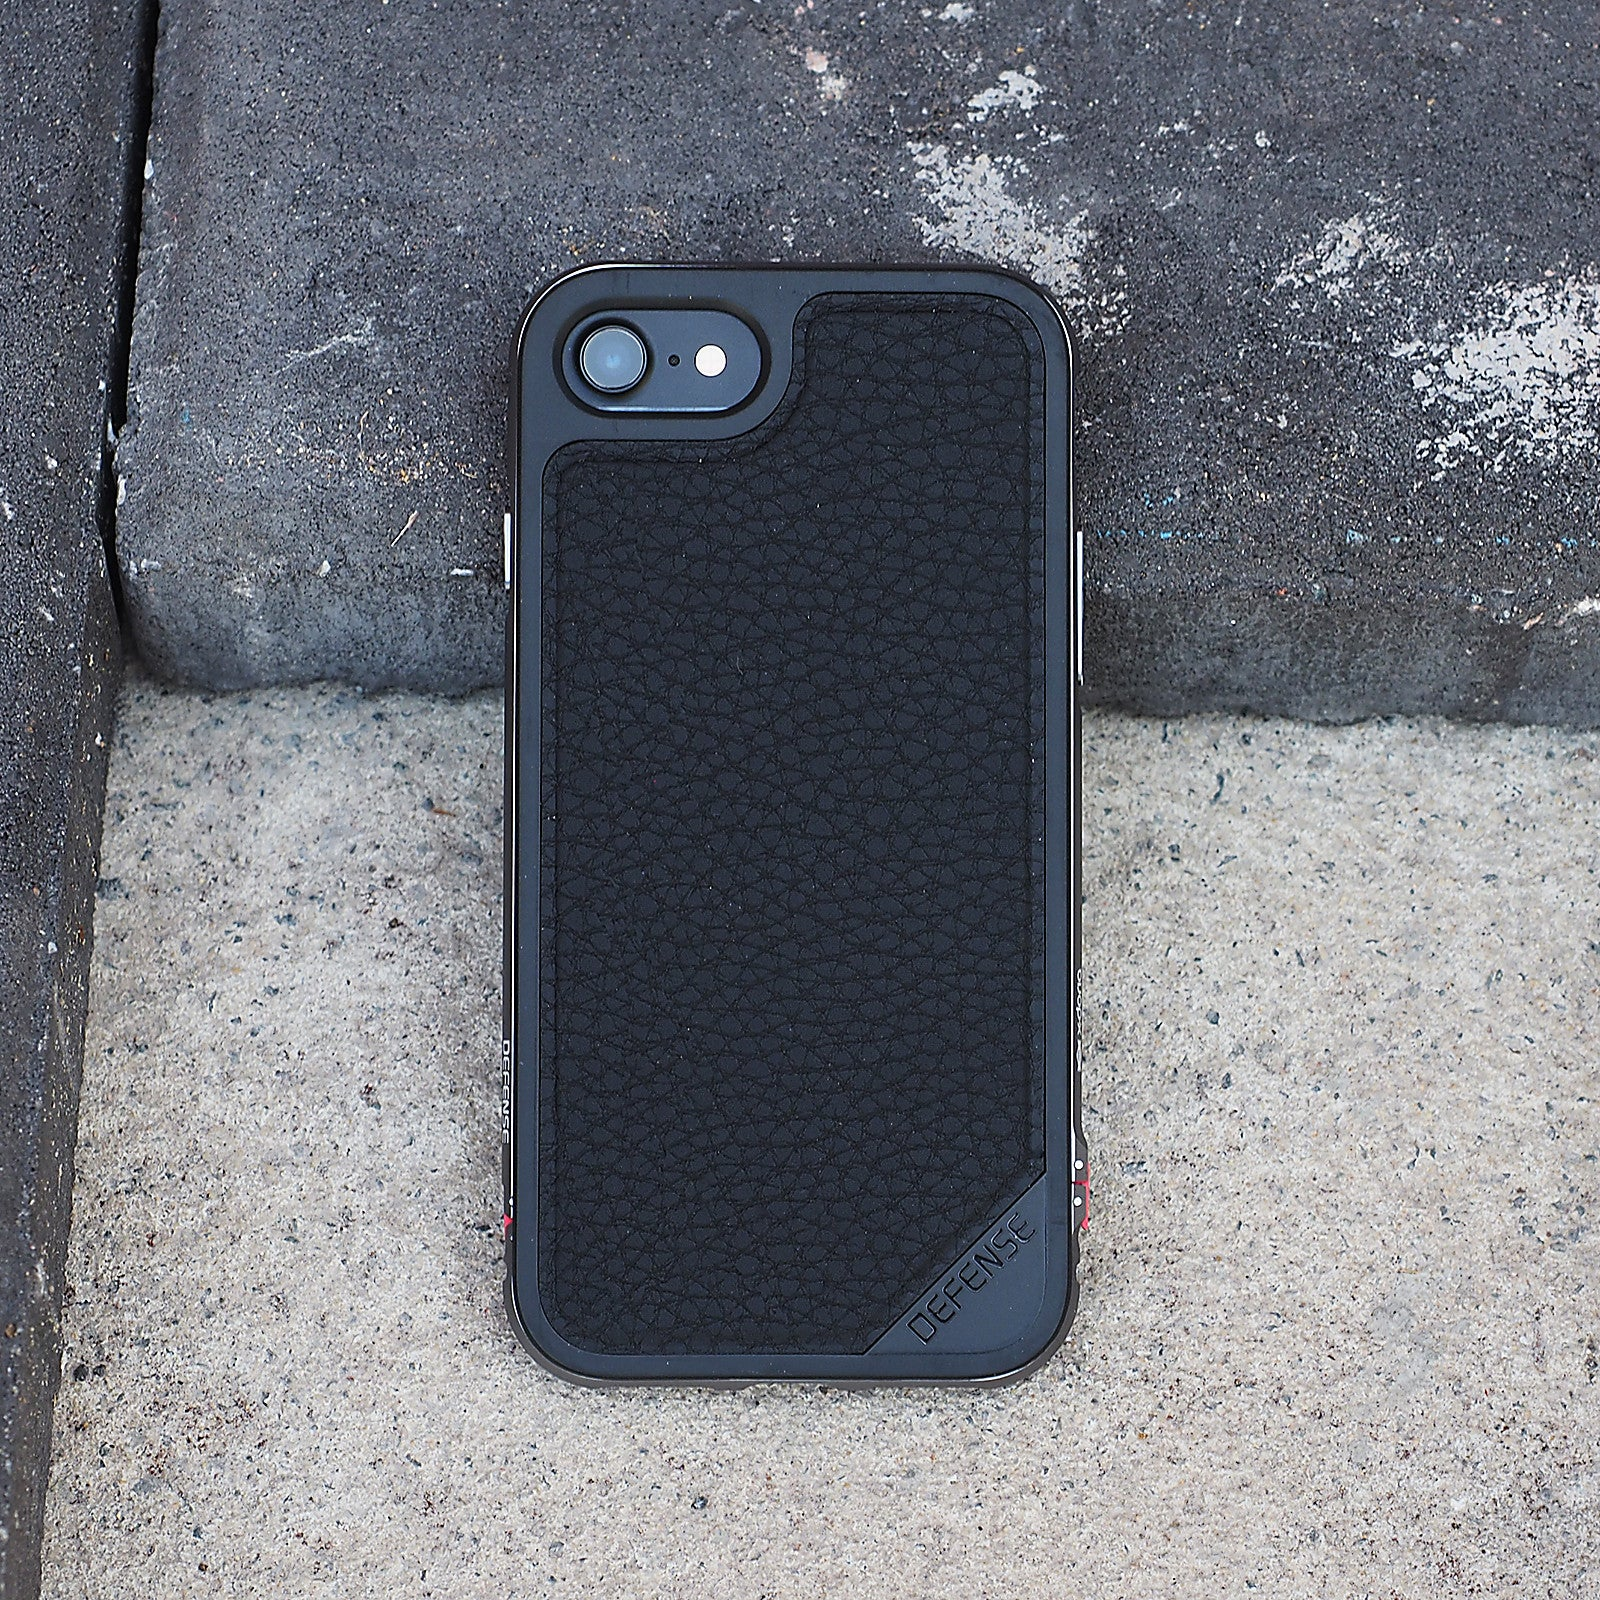 online store e6aaa 72bde X-doria Defense Lux Case For iPhone 7 - Black Leather